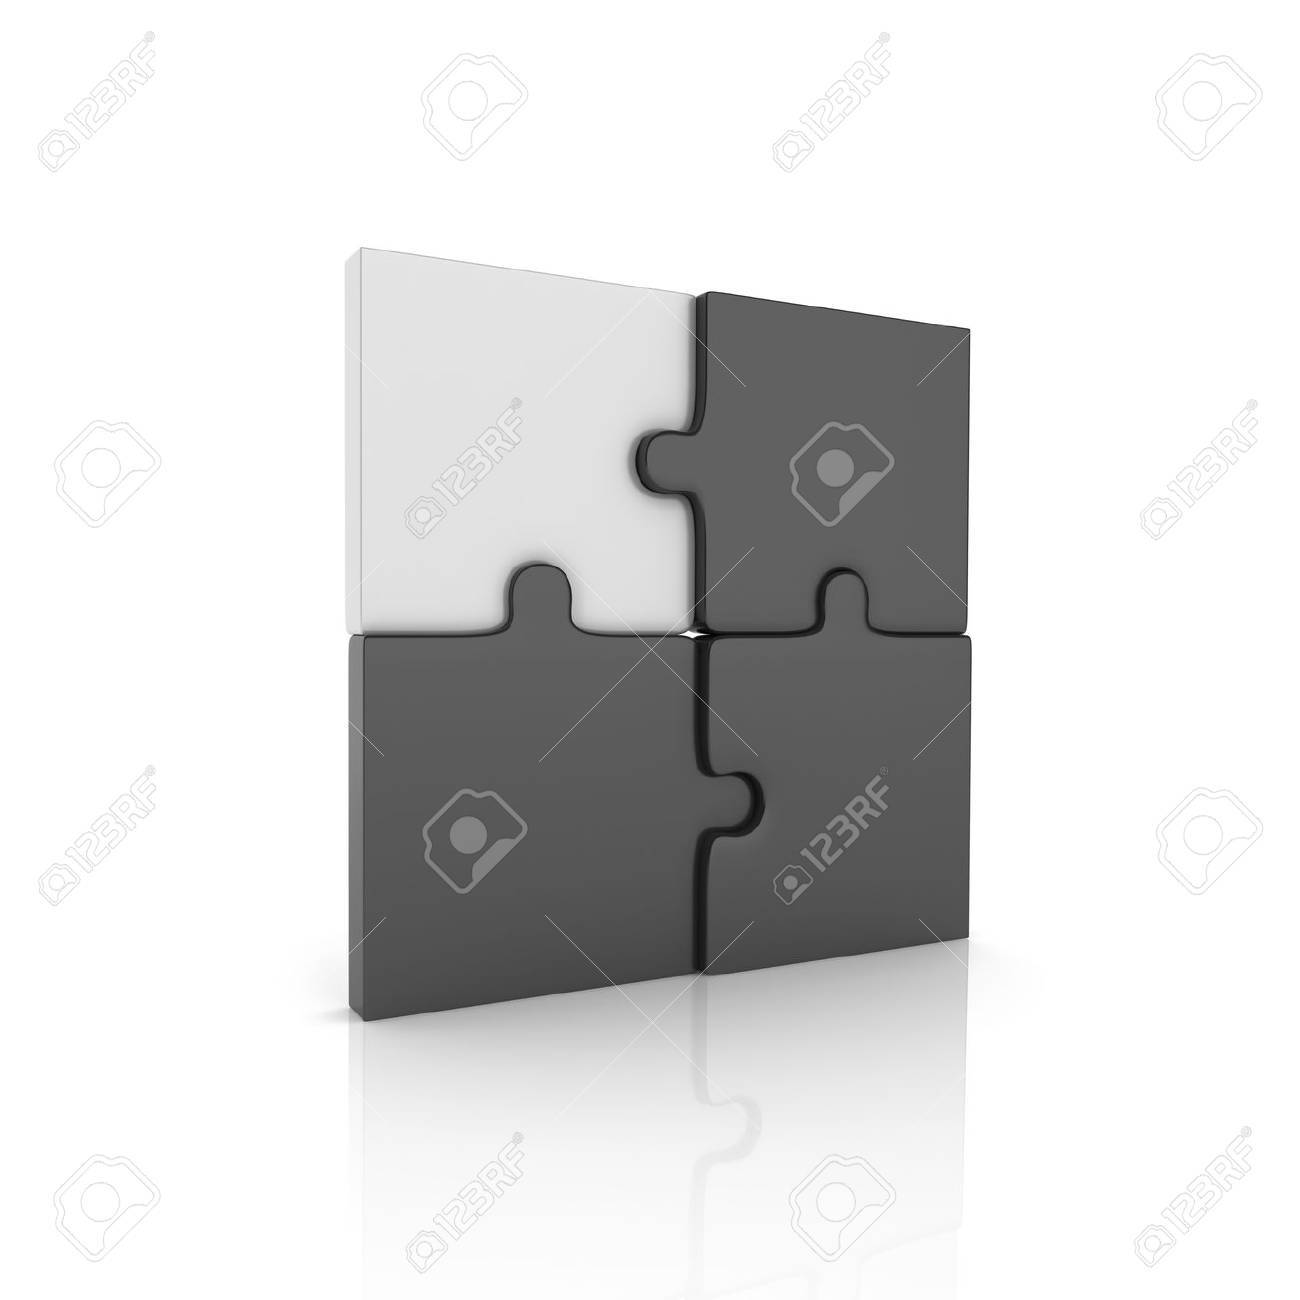 Illustration with puzzle elements and key puzzle (black collection) Stock Photo - 10131393